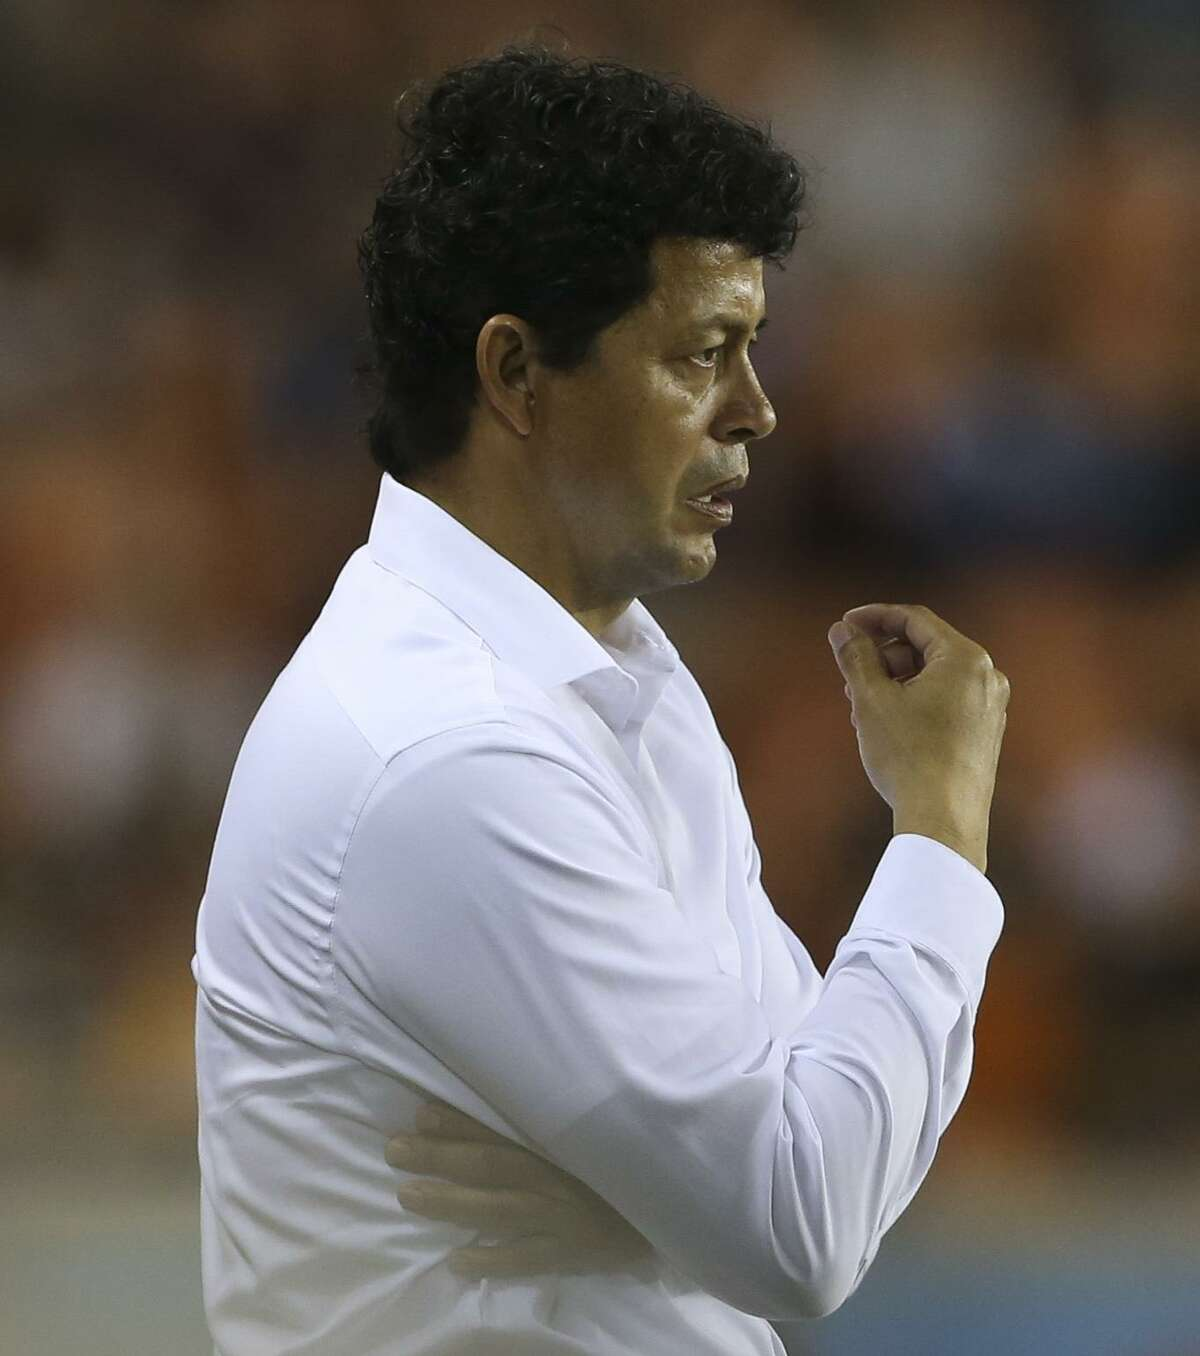 Houston Dynamo Head Coach Wilmer Cabrera watches the game against the Vancouver Whitecaps intensely during the second half of the MLS game at BBVA Compass Stadium on Saturday, March 10, 2018, in Houston. The Houston Dynamo lost to the Vancouver Whitecaps 2-1. ( Yi-Chin Lee / Houston Chronicle )